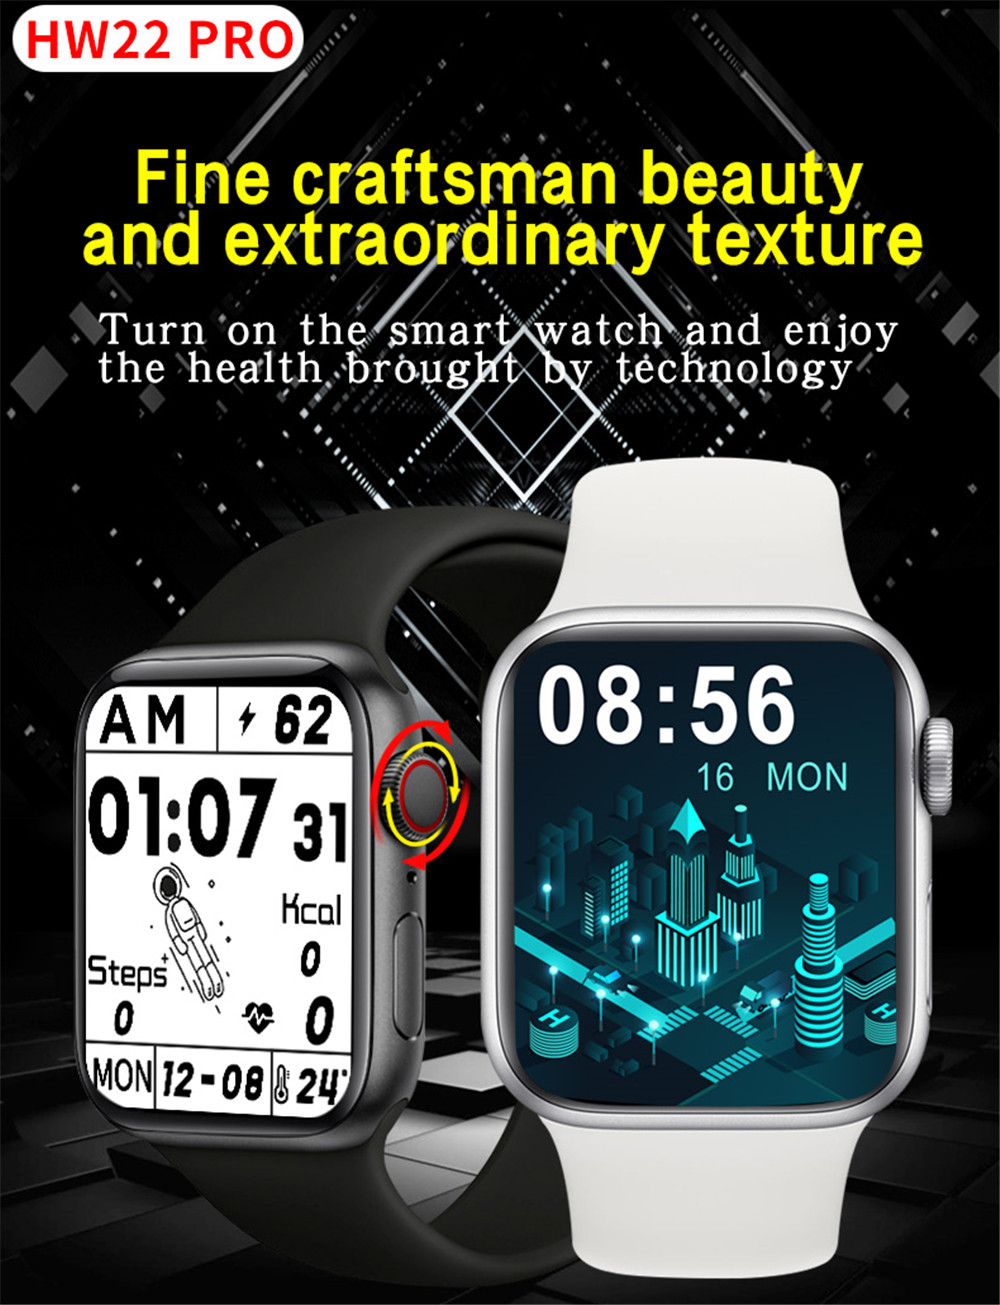 Hced6d8e2d1c148668243e64d879e968a1 2021 HW22pro Smart Watch Men Women Split Screen Display Original Smartwatch Body Temperature Monitor BT Call For Android IOS IWO